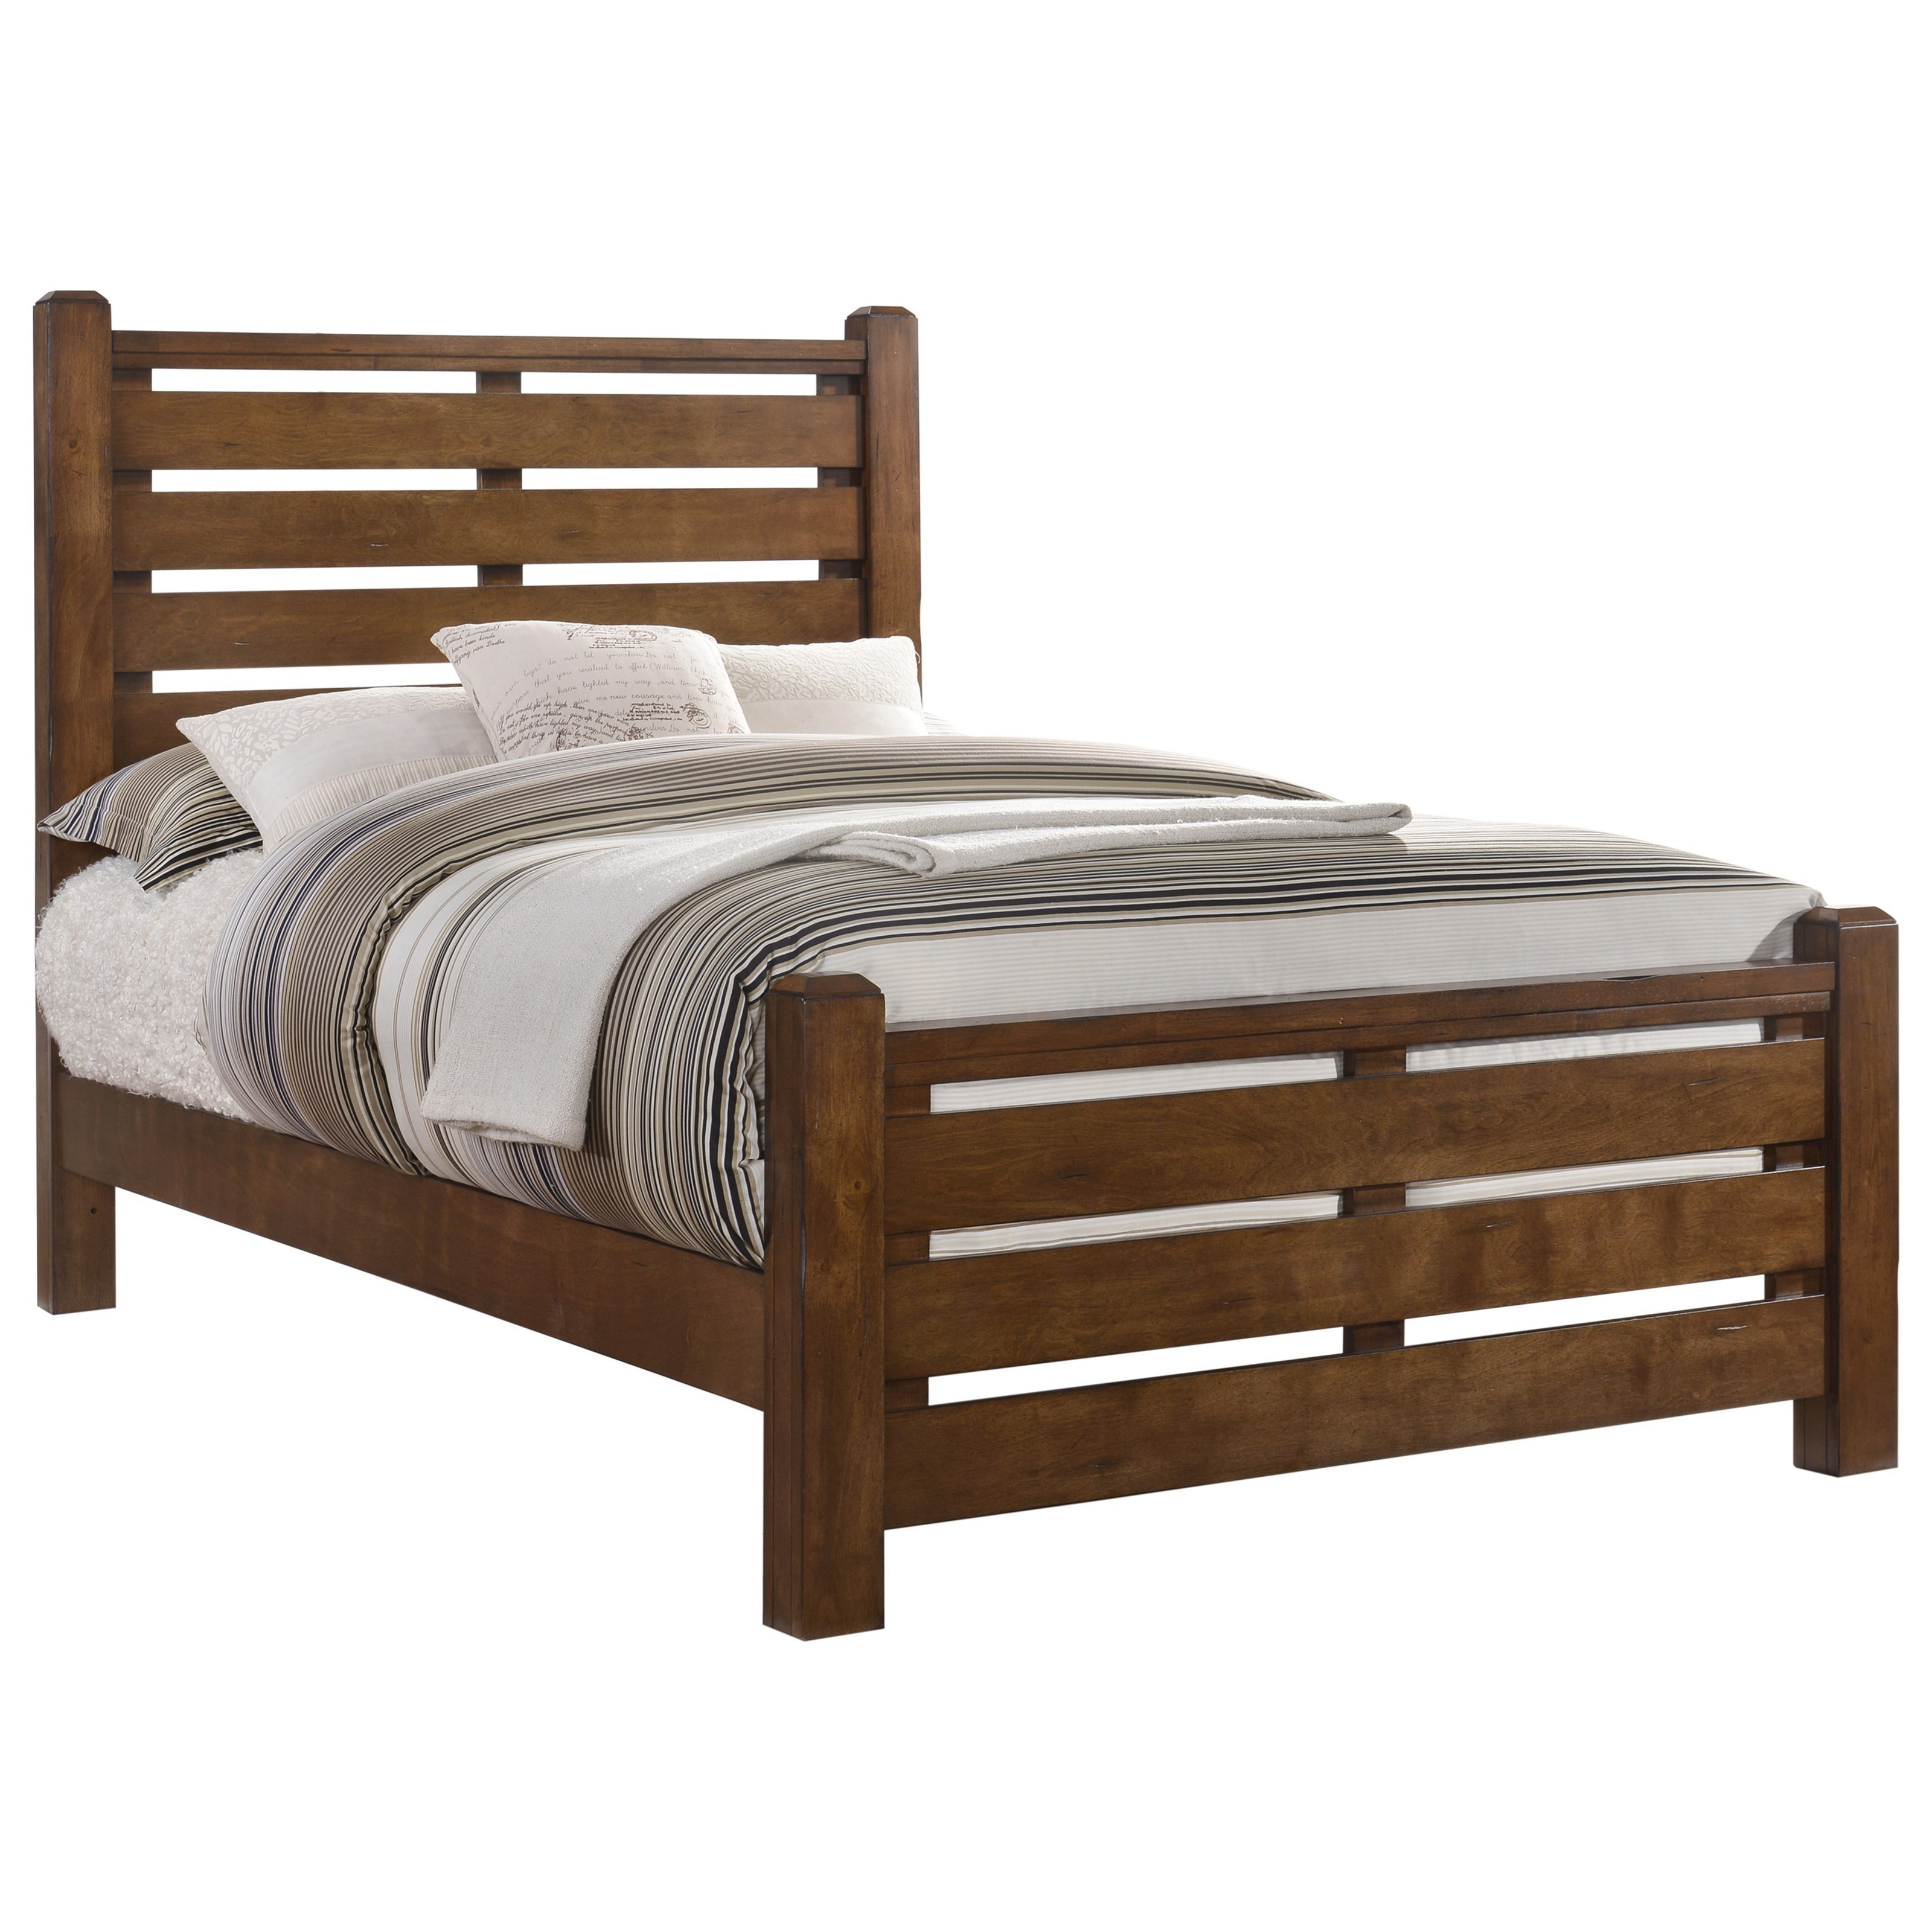 1022 Logan Full Bed by Lane at Story & Lee Furniture